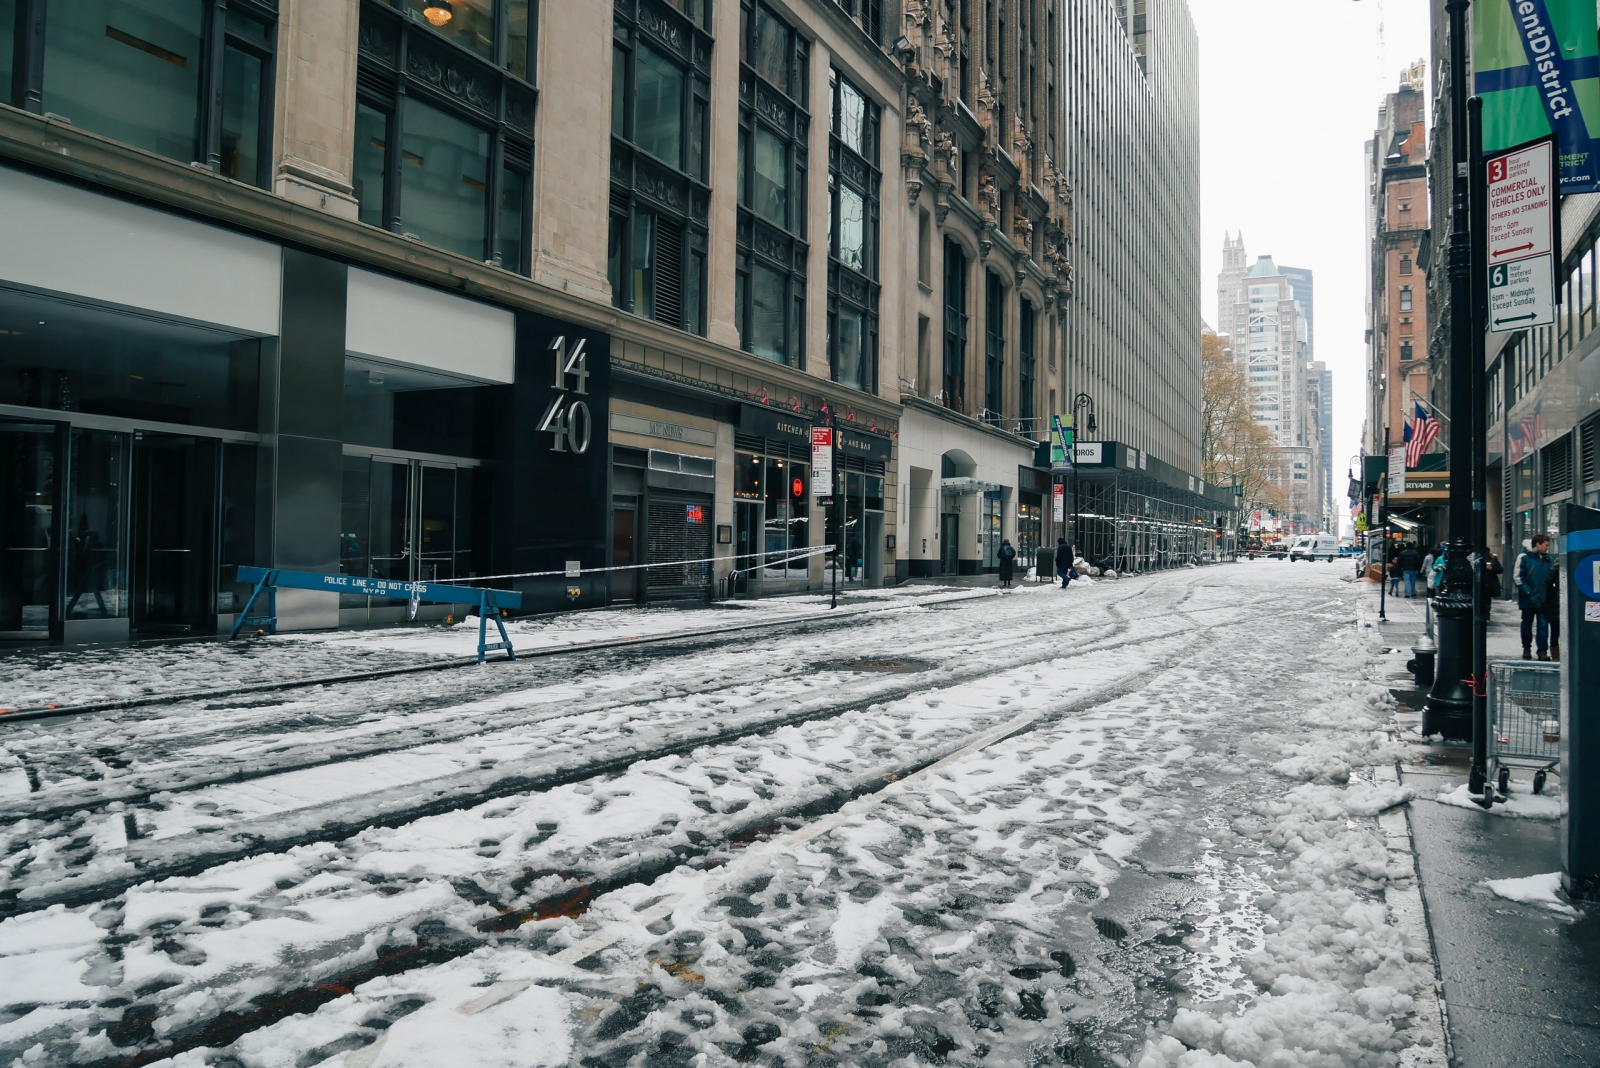 Slush on the streets of New York